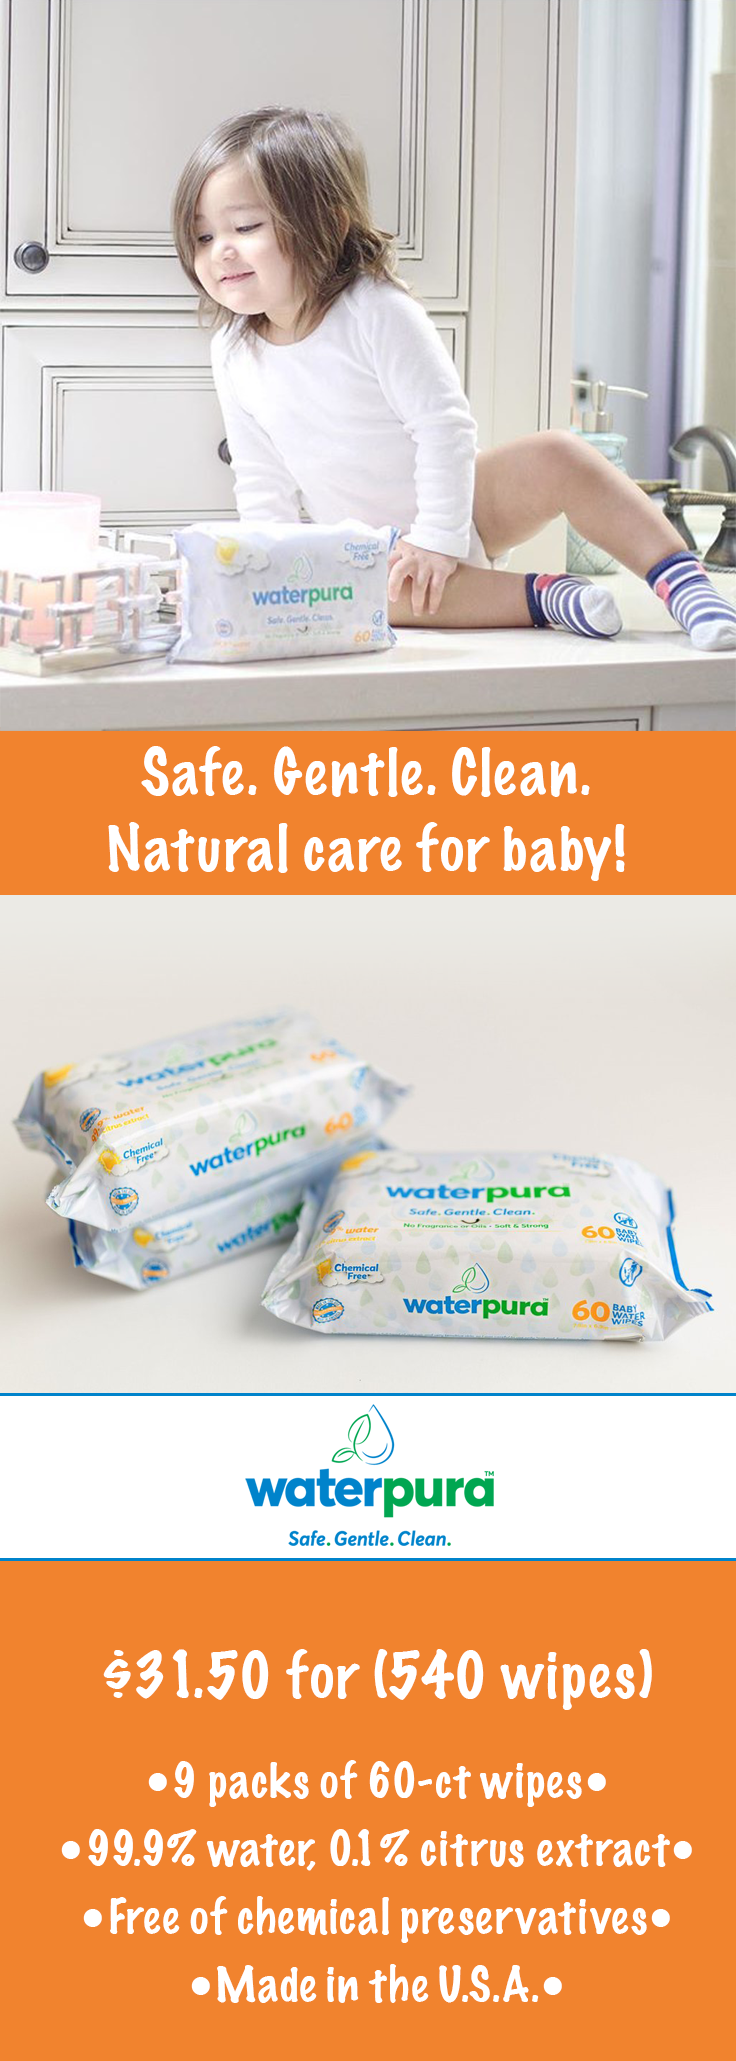 Water wipes for baby's sensitive skin. Made in the U.S.A